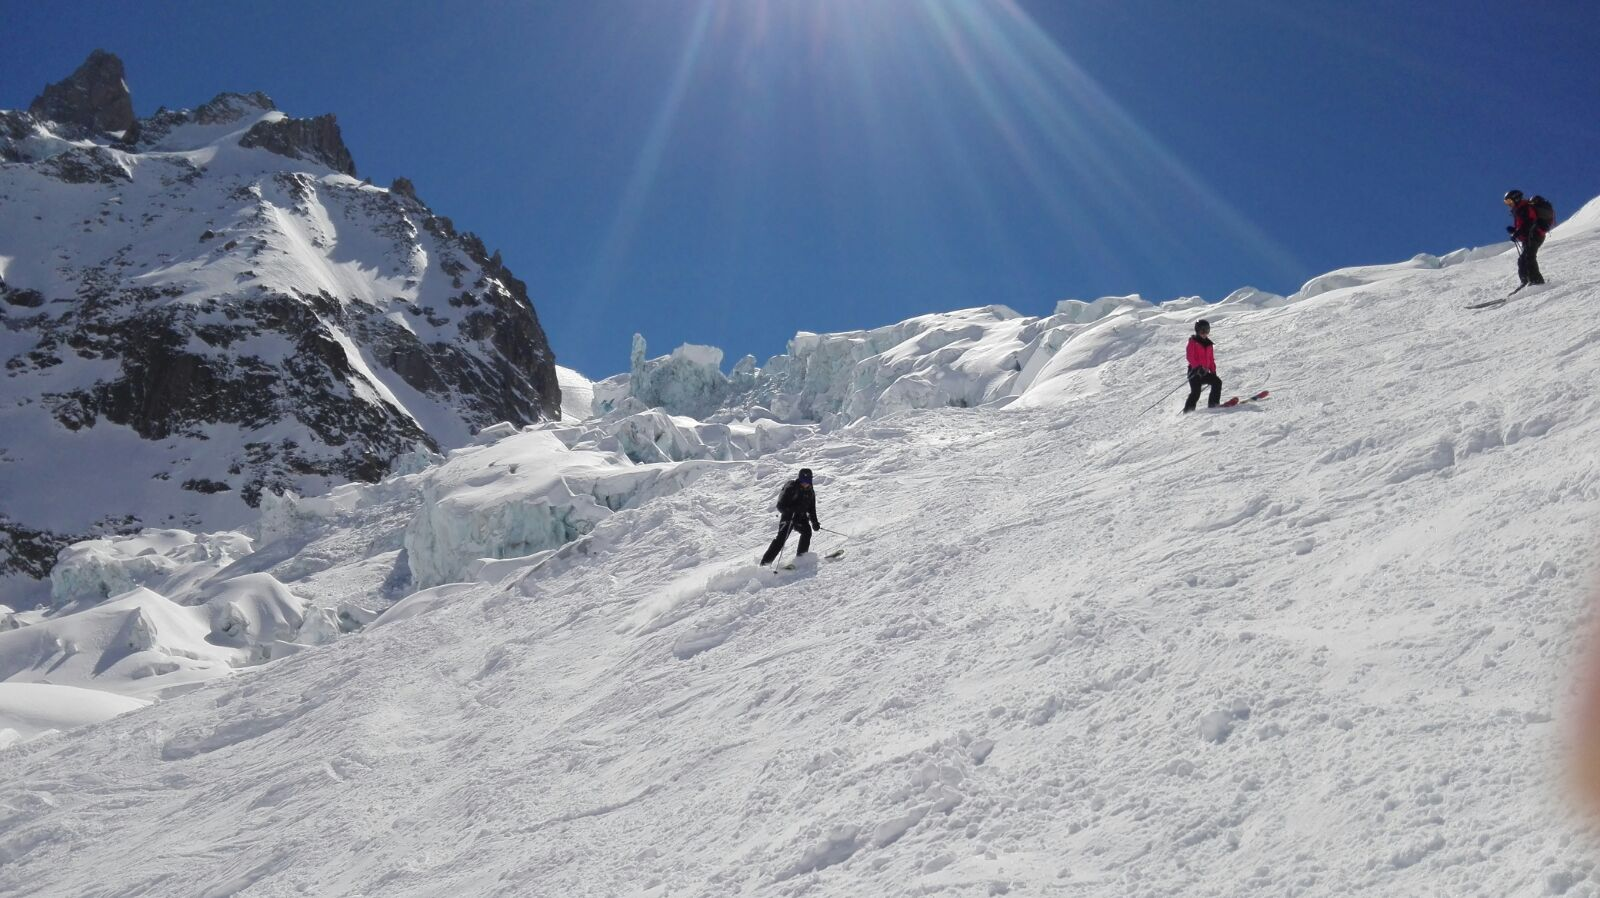 vallee blanche guide alpine proup (53)